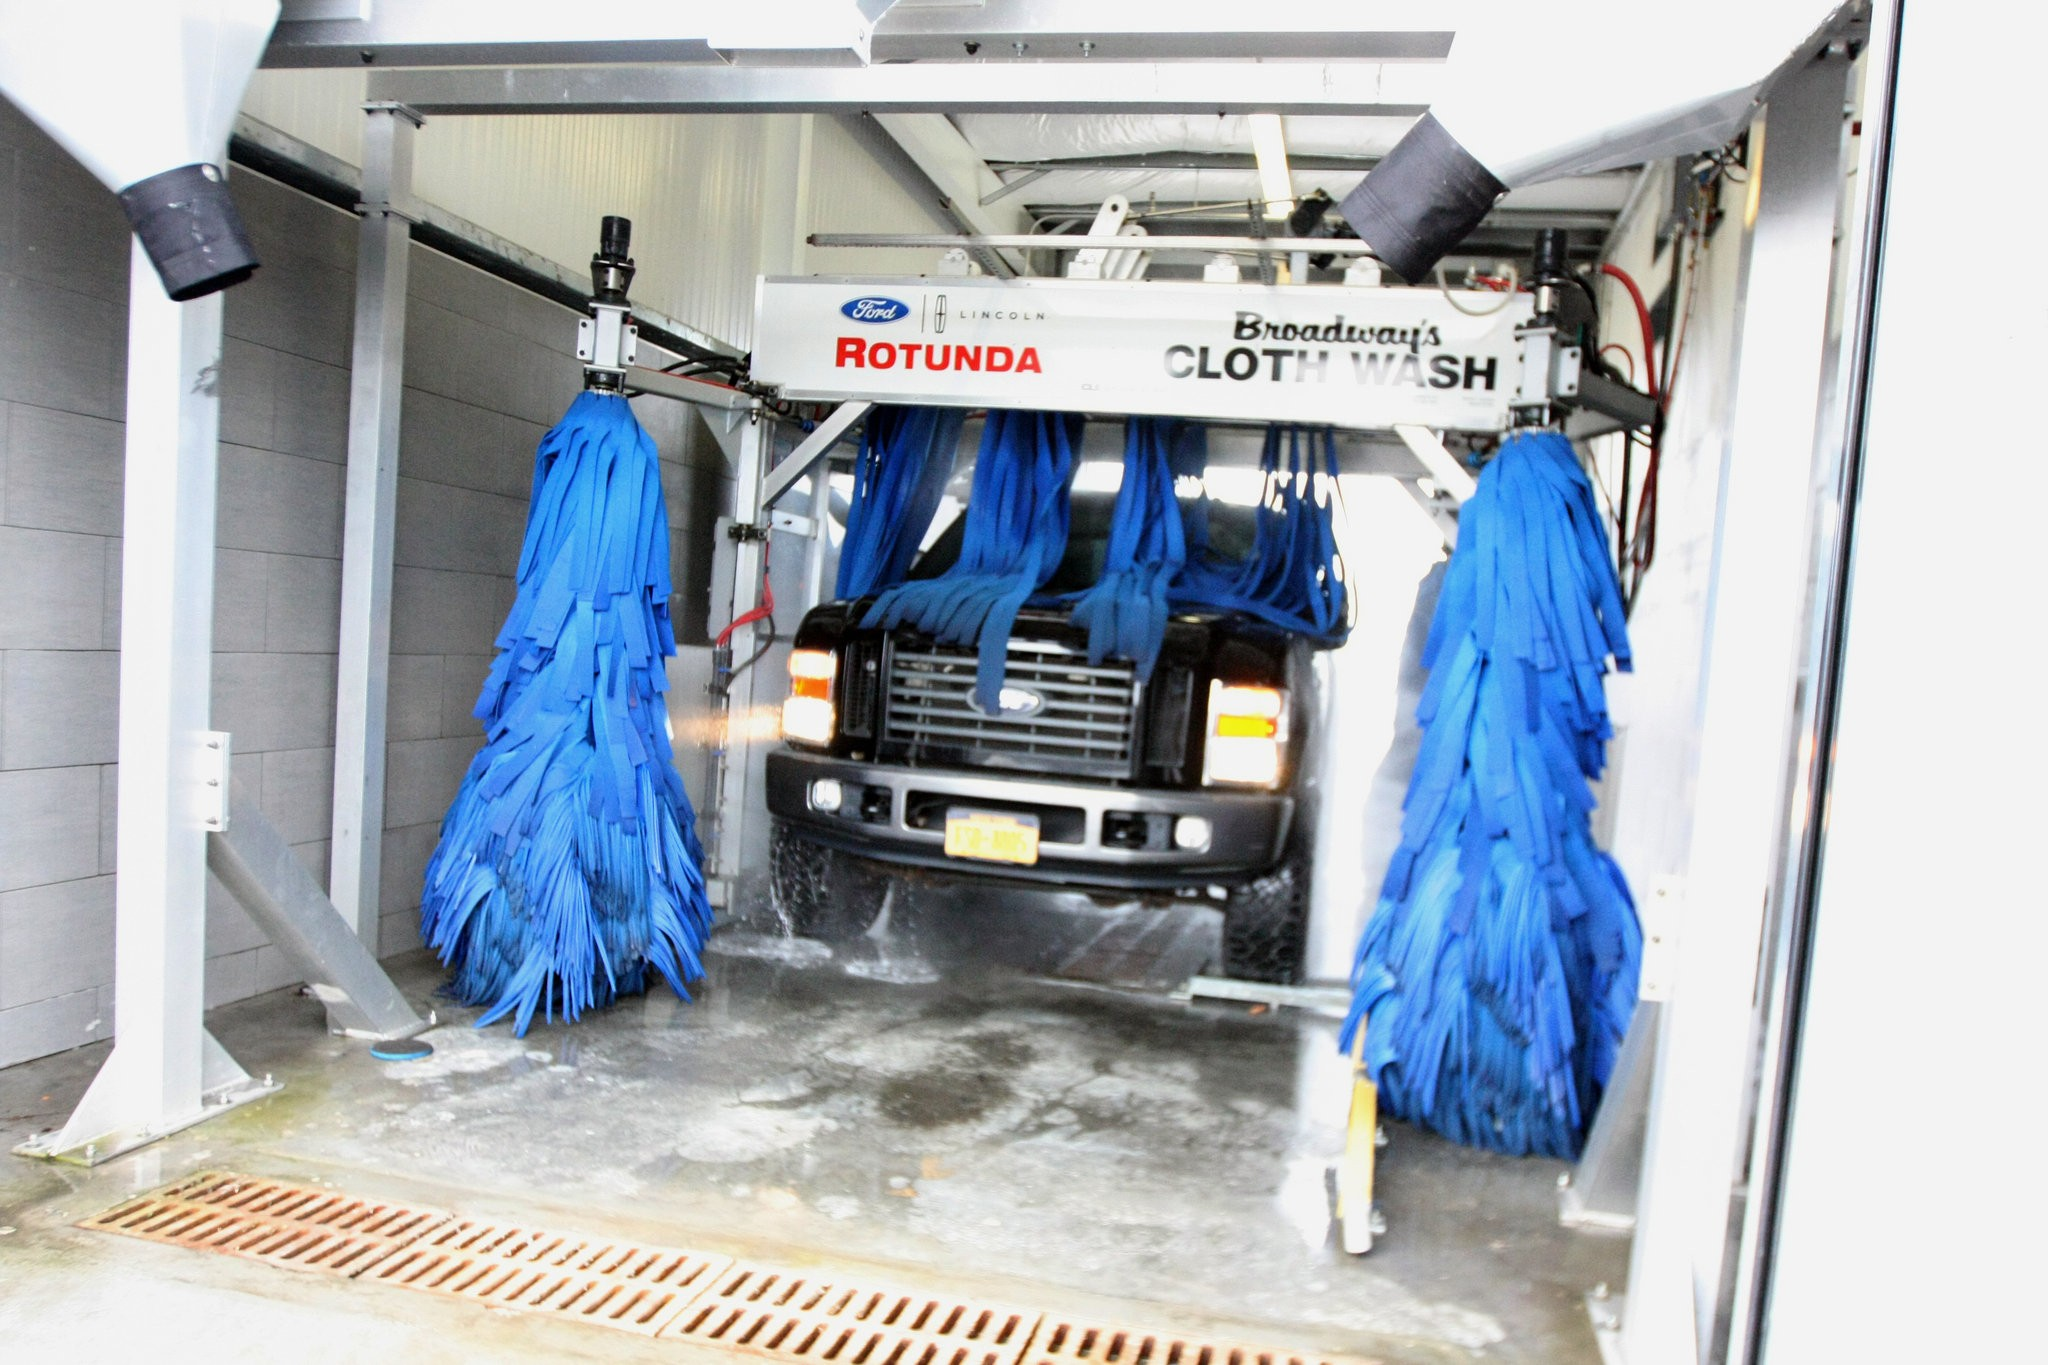 Staten Island S Best Car Wash Armstrong Car Wash Empire H2o And